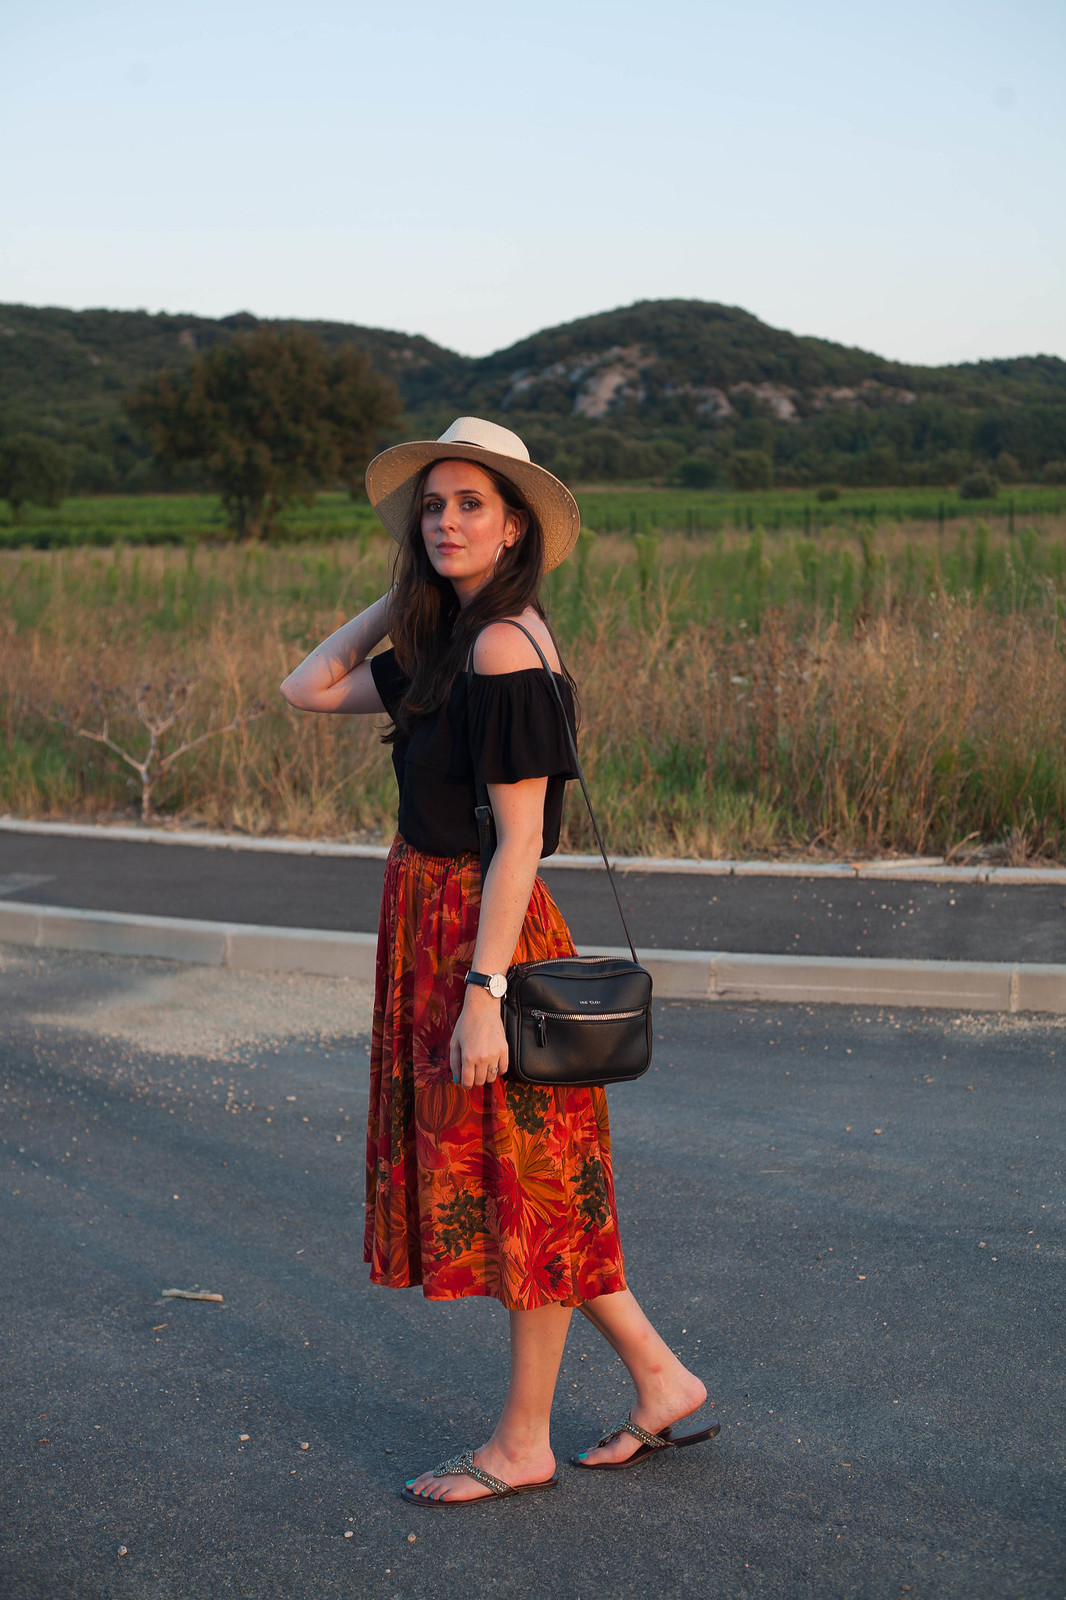 Outfit: off shoulder top in the sunset